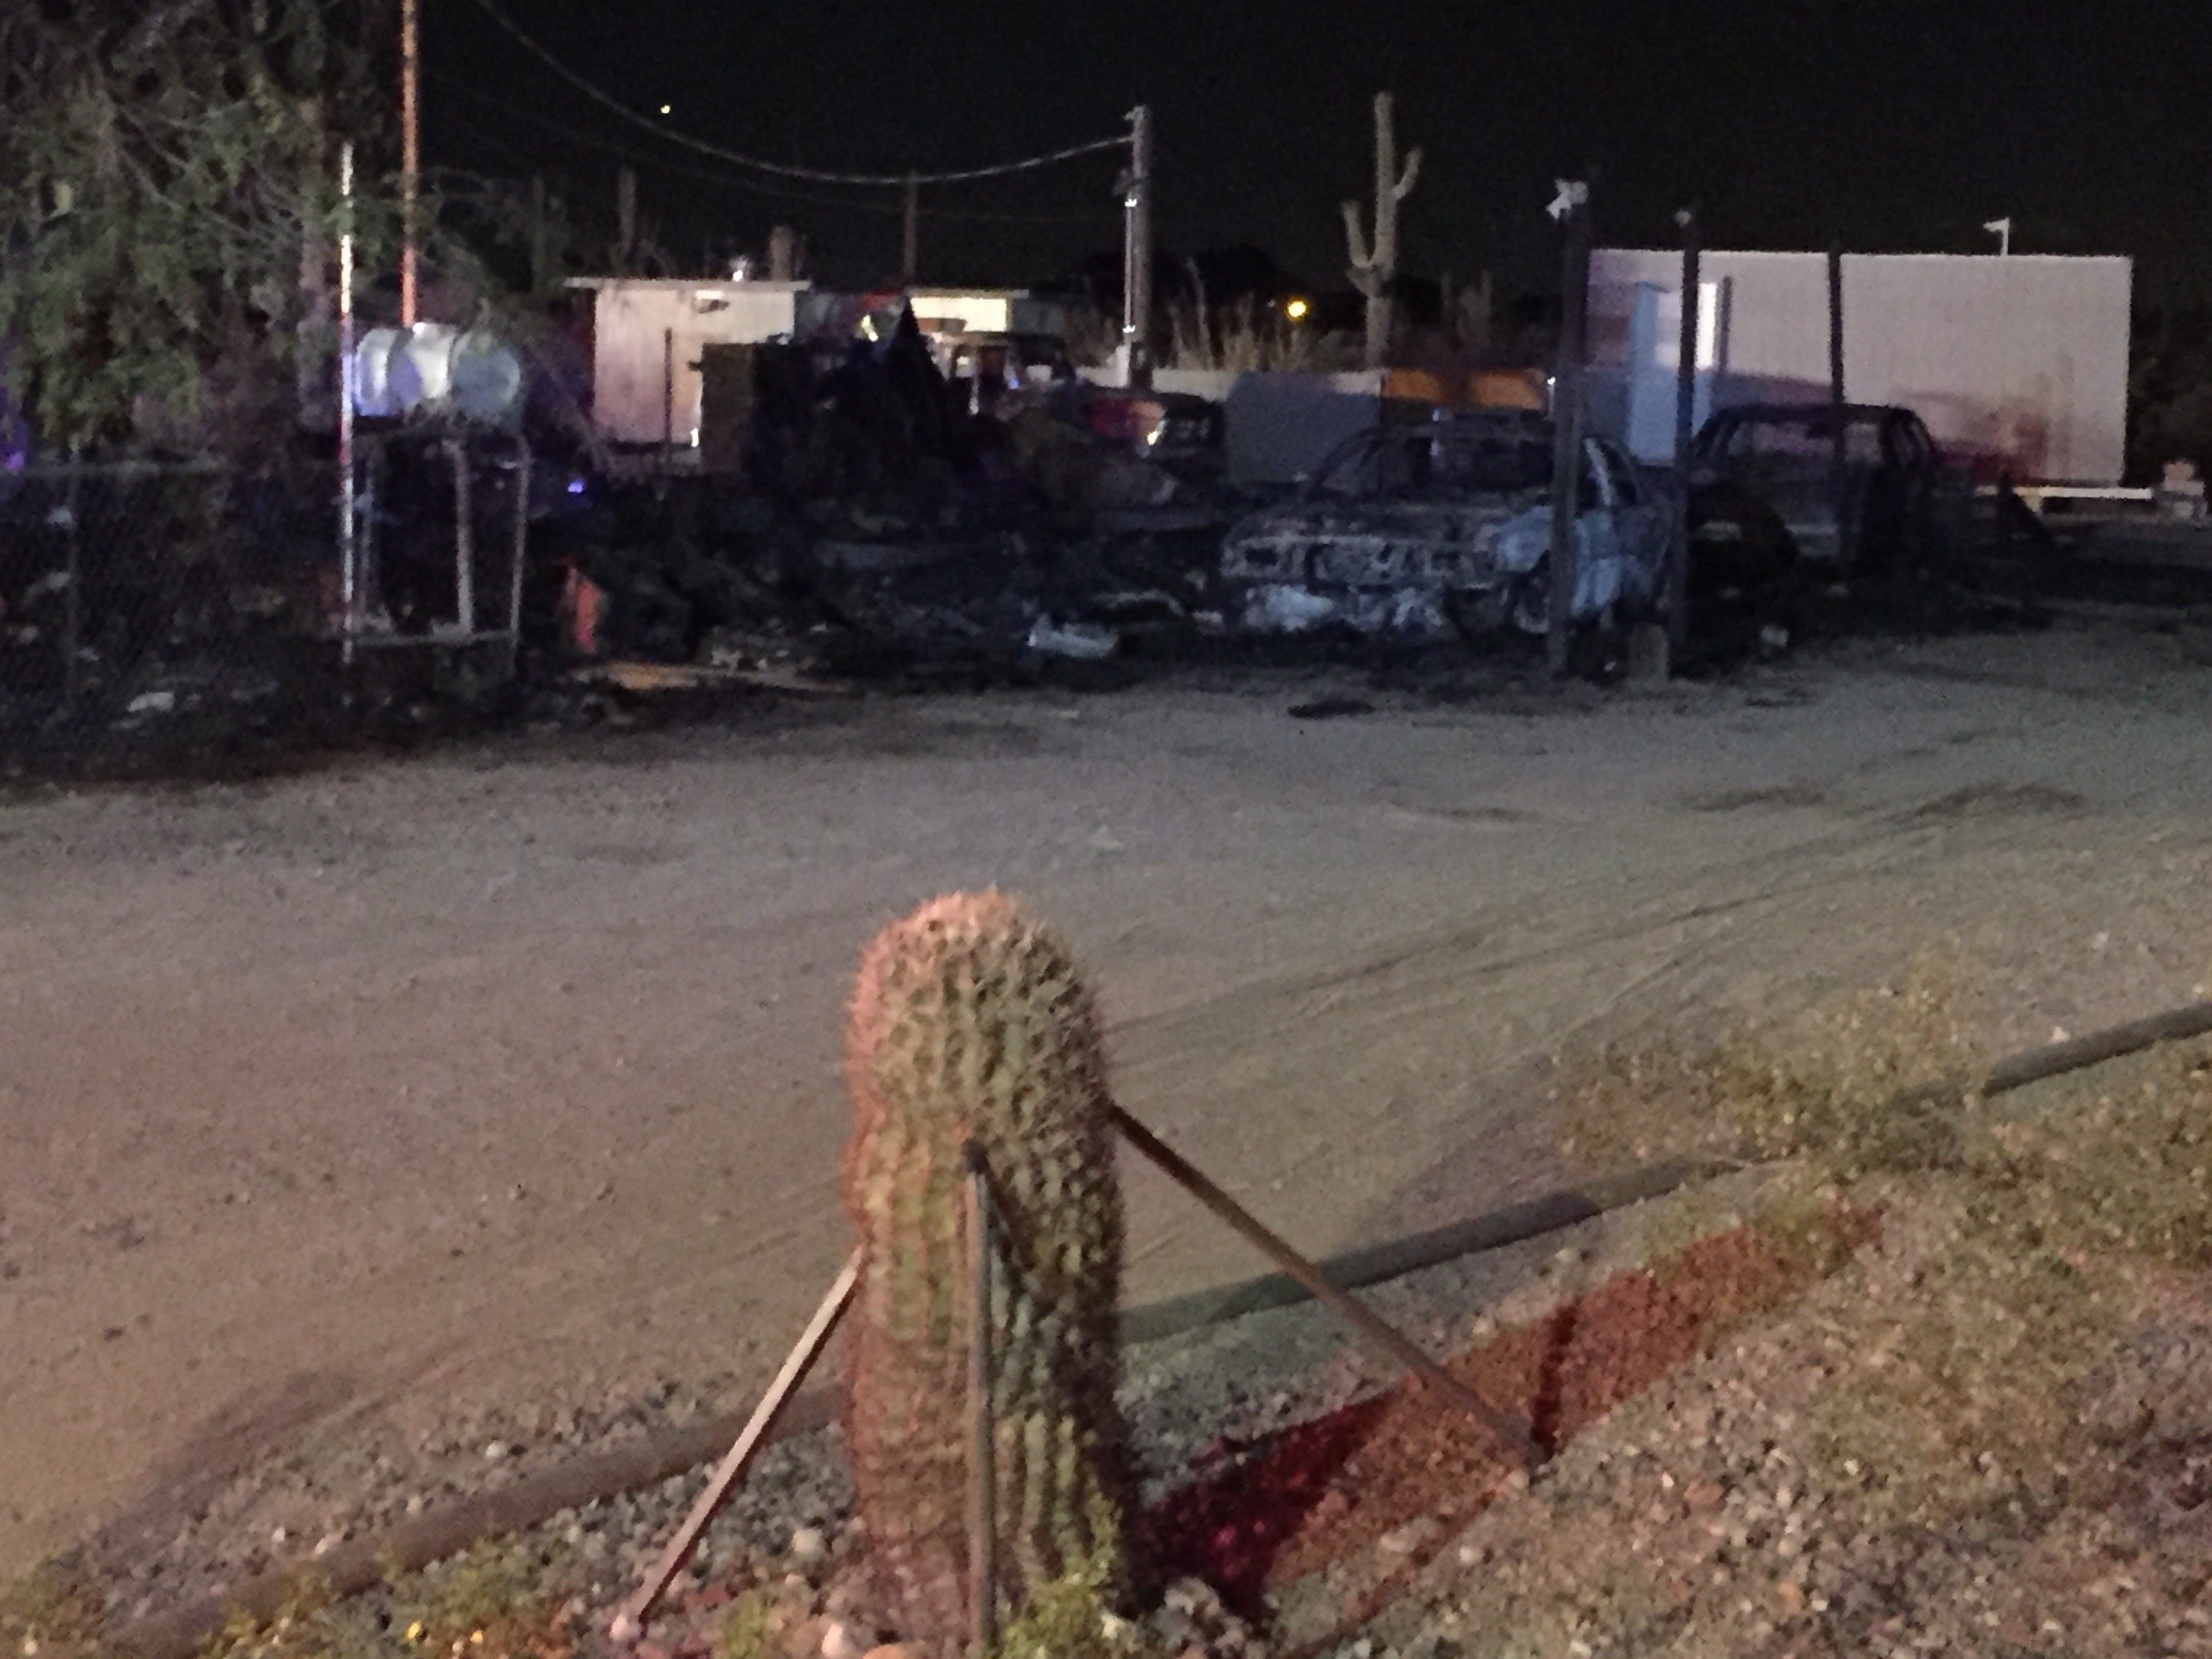 A fire seriously burned a mobile home and cars in Apache Junction. (Source: KPHO/KTVK)